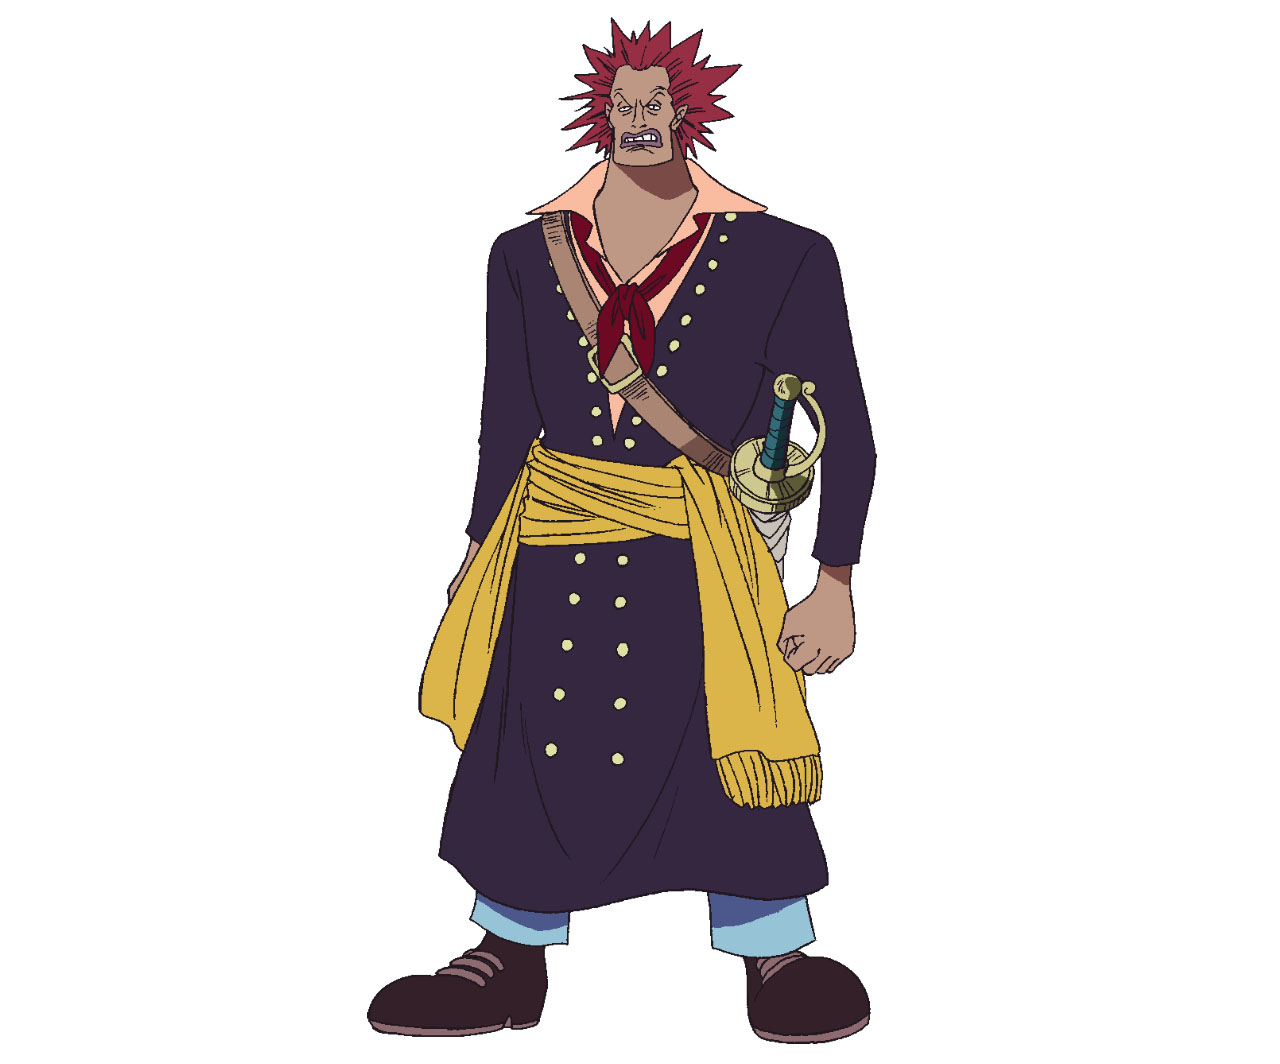 https://one-piece.com/assets/images/anime/character/data/Rockstar/img.jpg